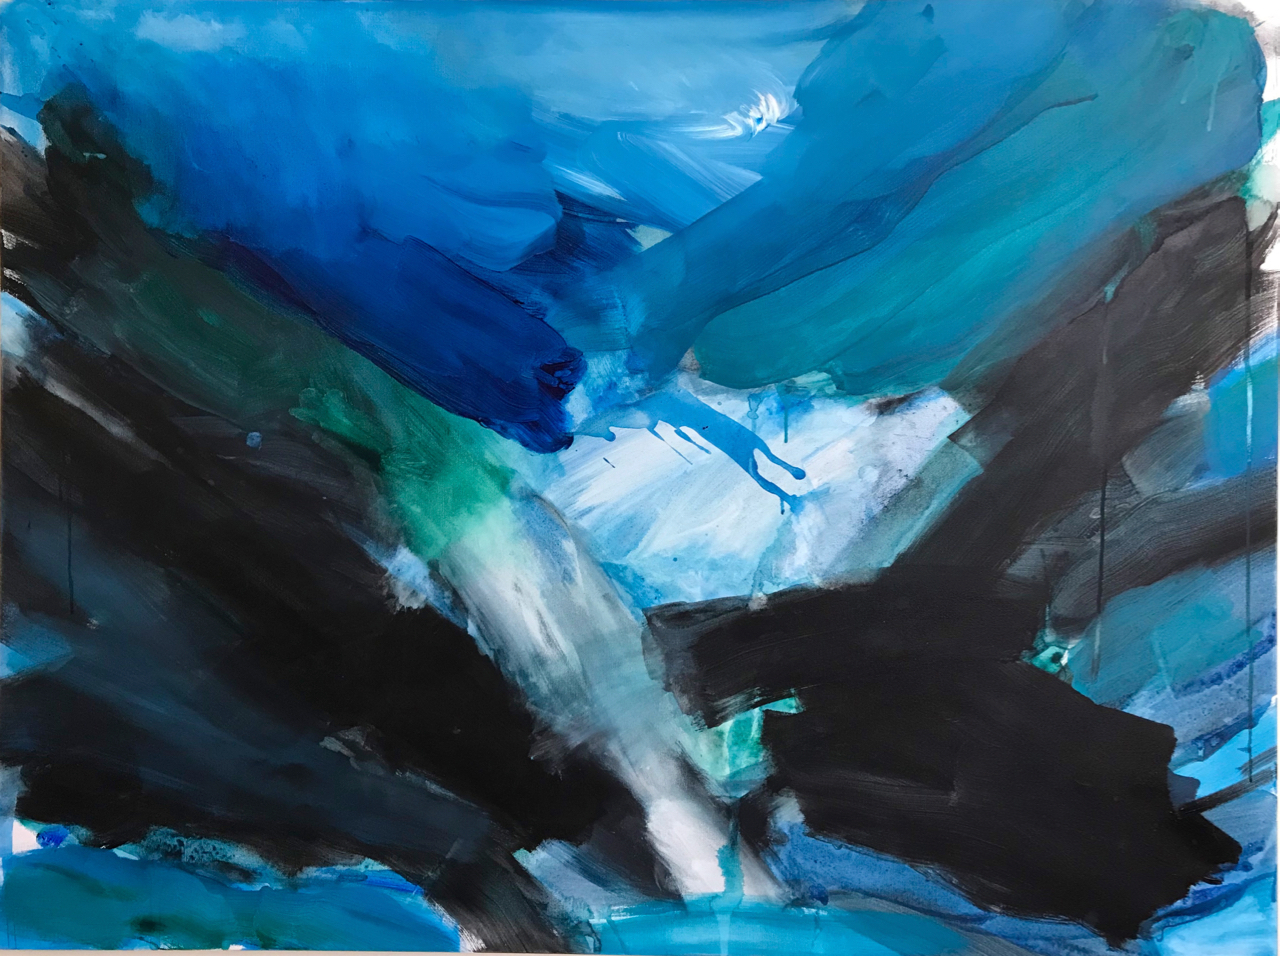 WANDERING THROUGH CHANGE - Abstract Paintings by Caroline Wampole  AUGUST 1 - SEPTEMBER 30, 2018at Bread Euphoria Bakery and CafeHaydenville, MAOpening Reception Thursday August 9th, 5 to 8 pm